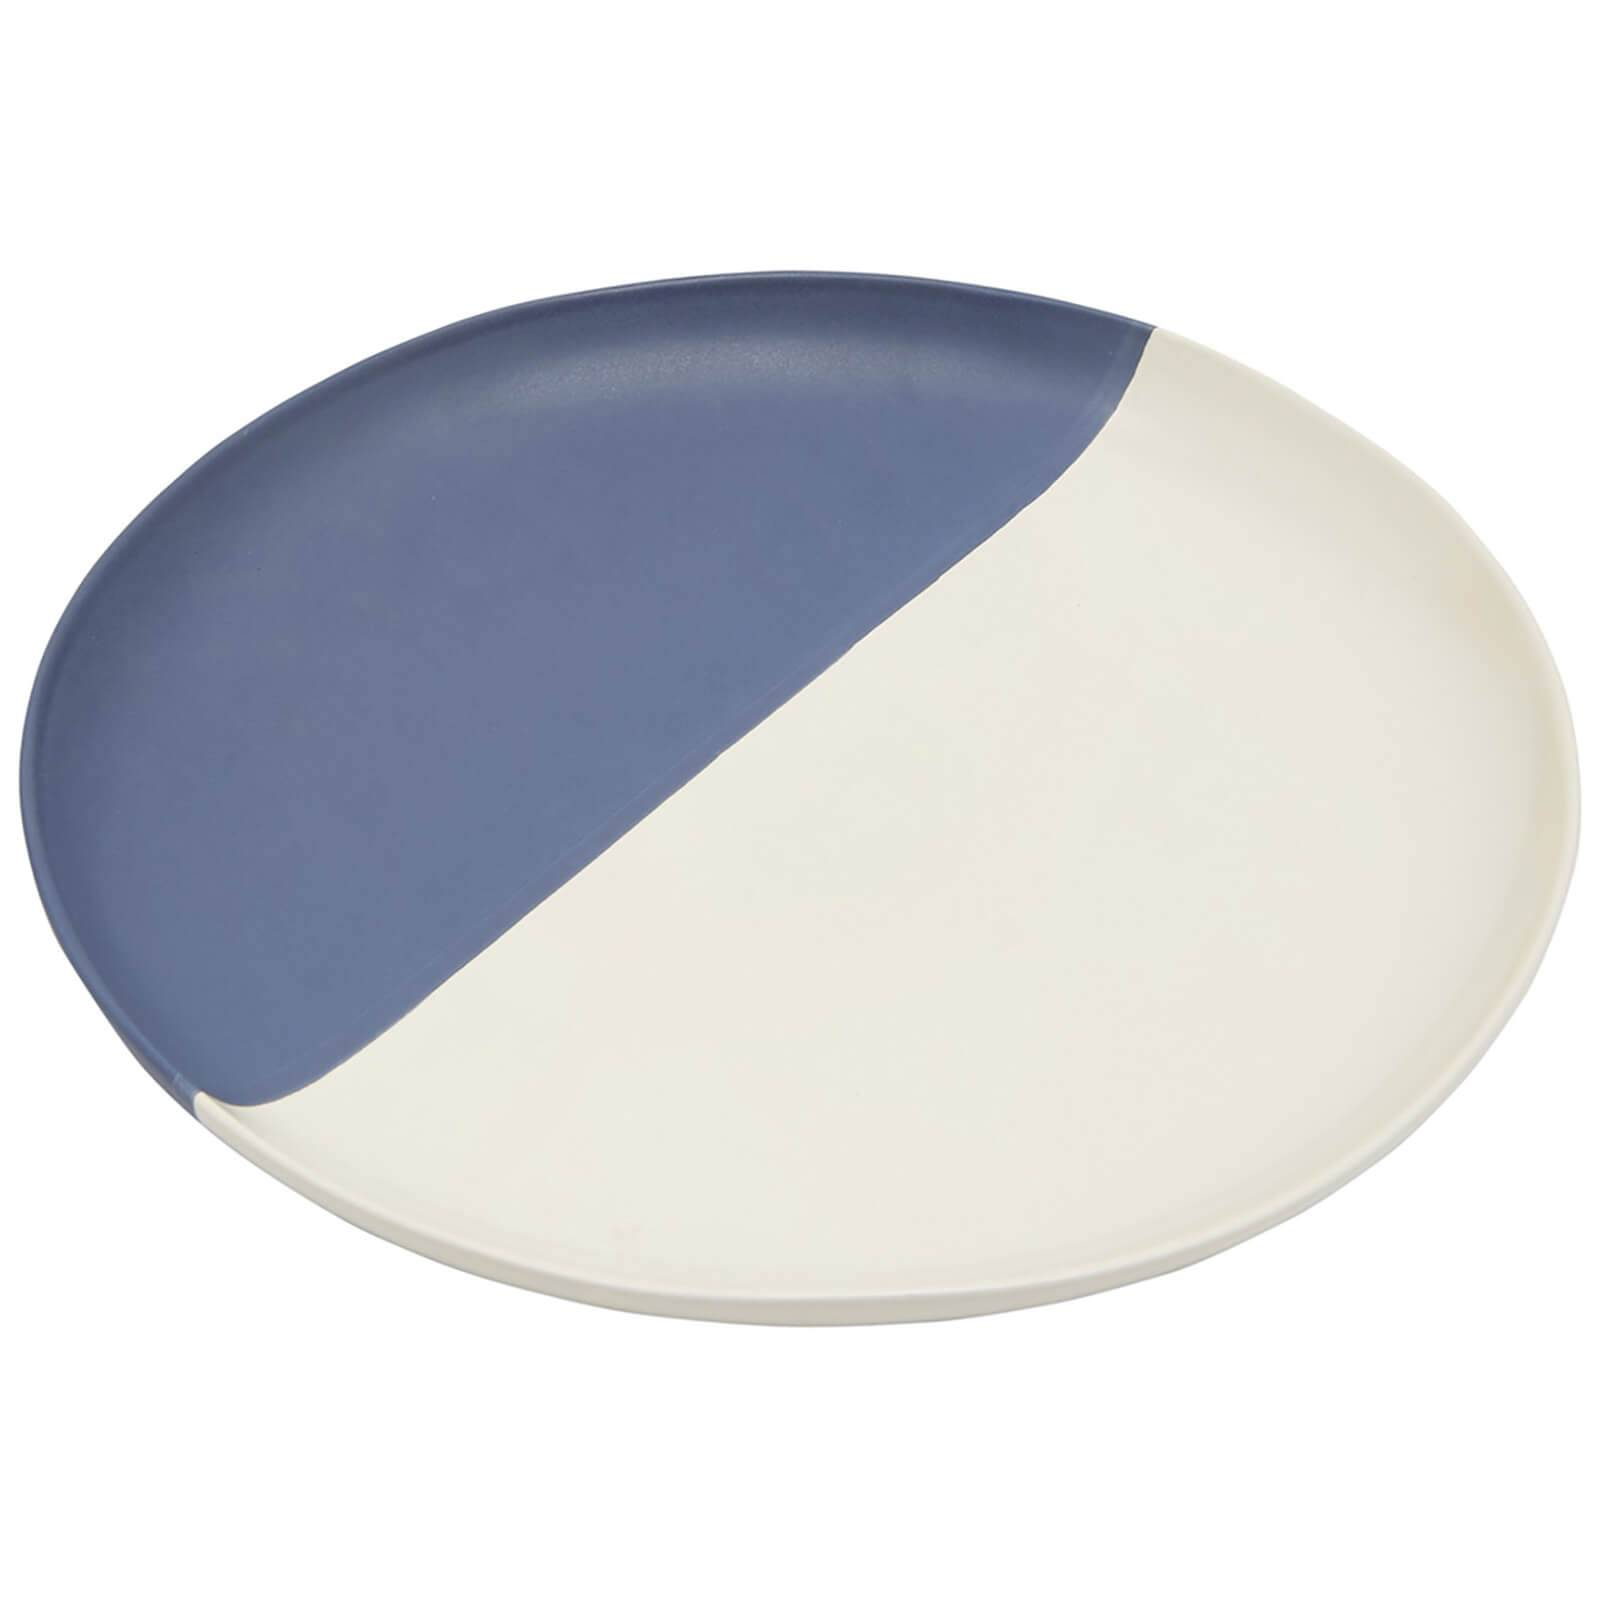 Joules Stoneware Dinner Plate - French Navy